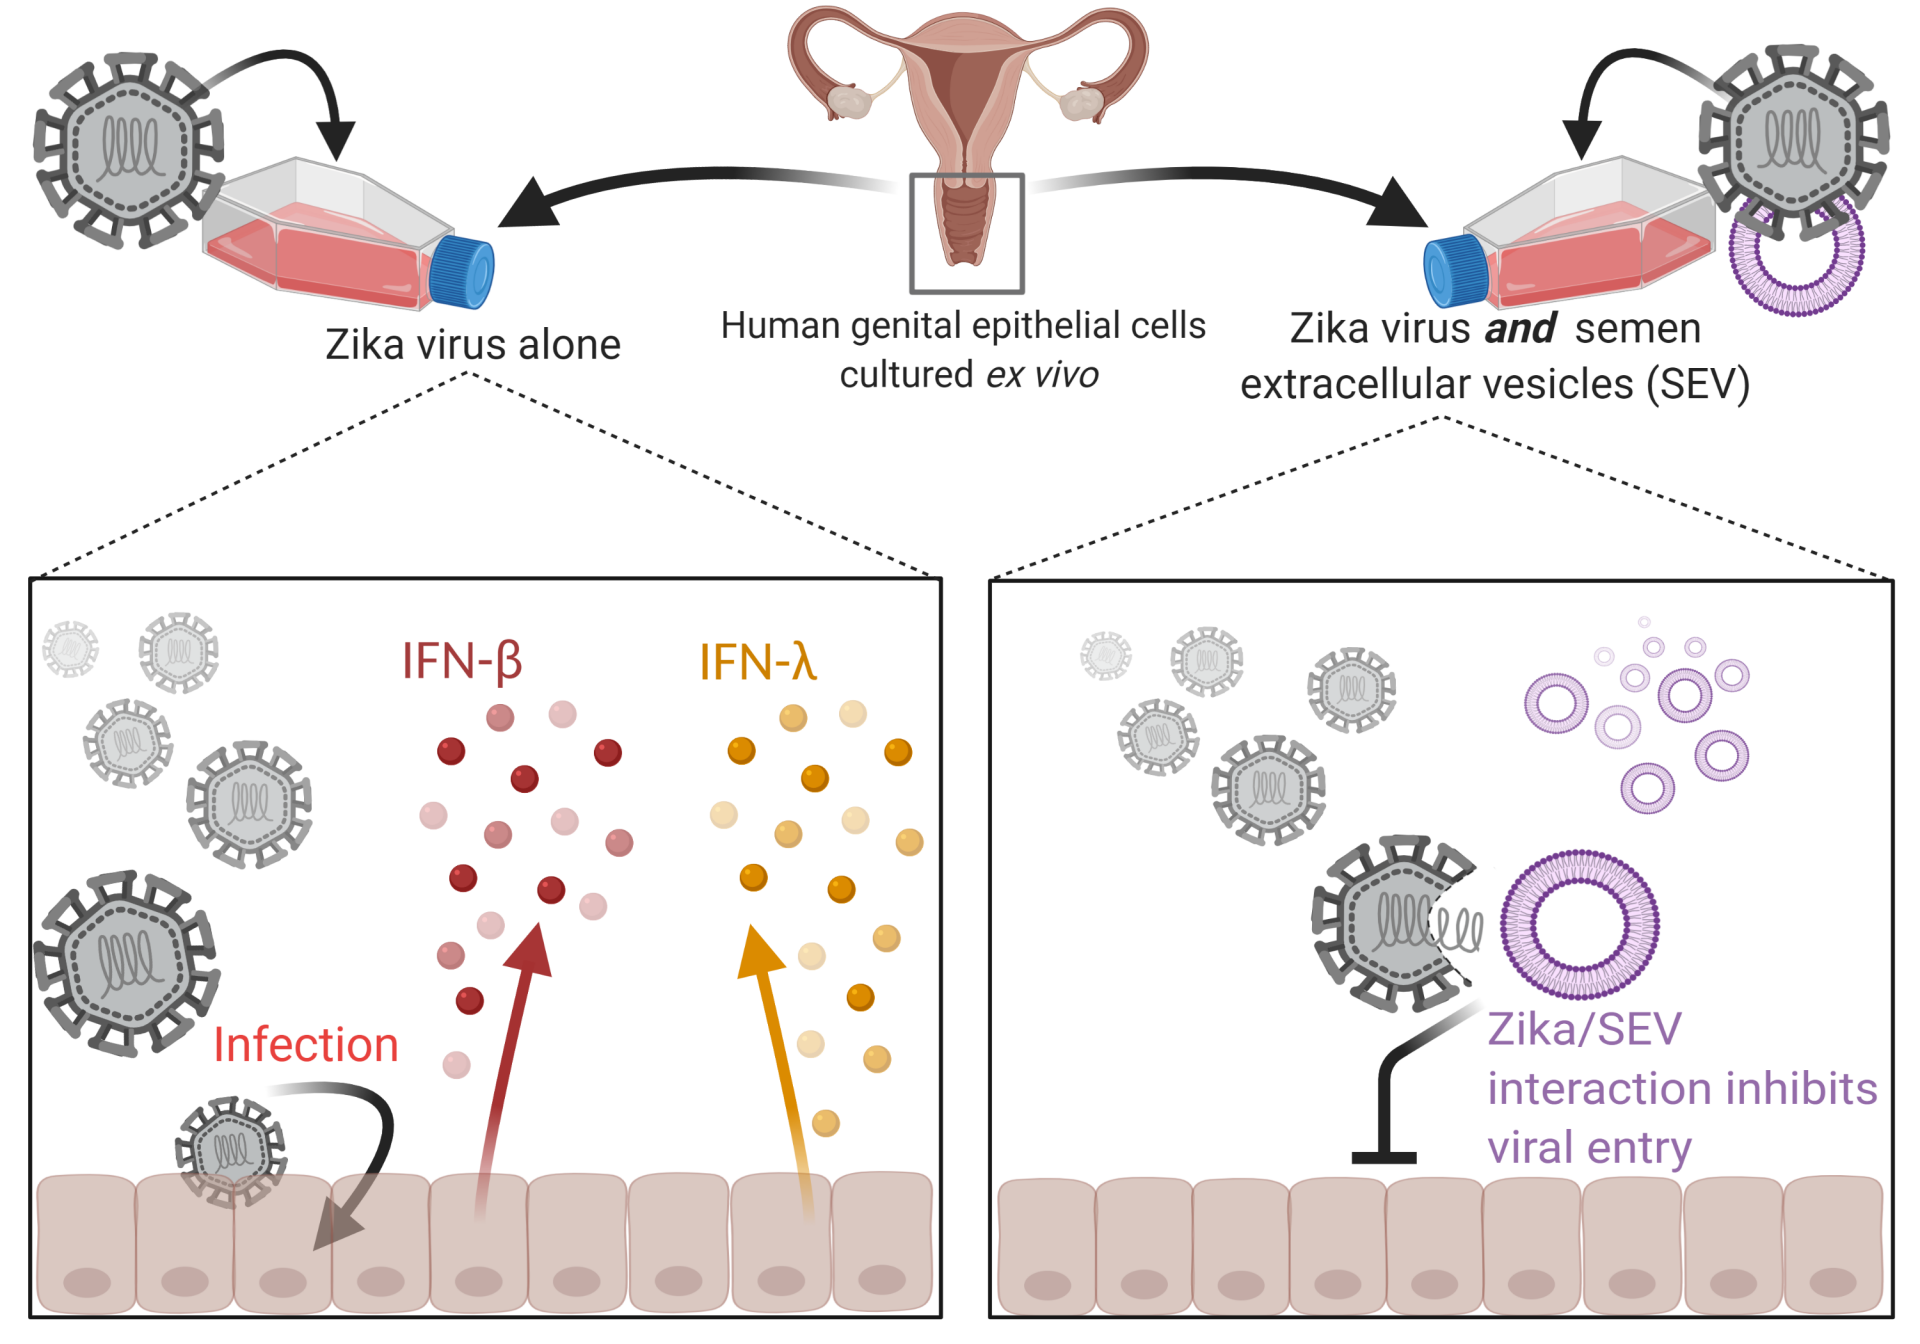 Seminal extracellular vesicles inhibit Zika virus cell entry when Zika virus and semen are cultured with ex vivo cultured human genital epithelial cells.